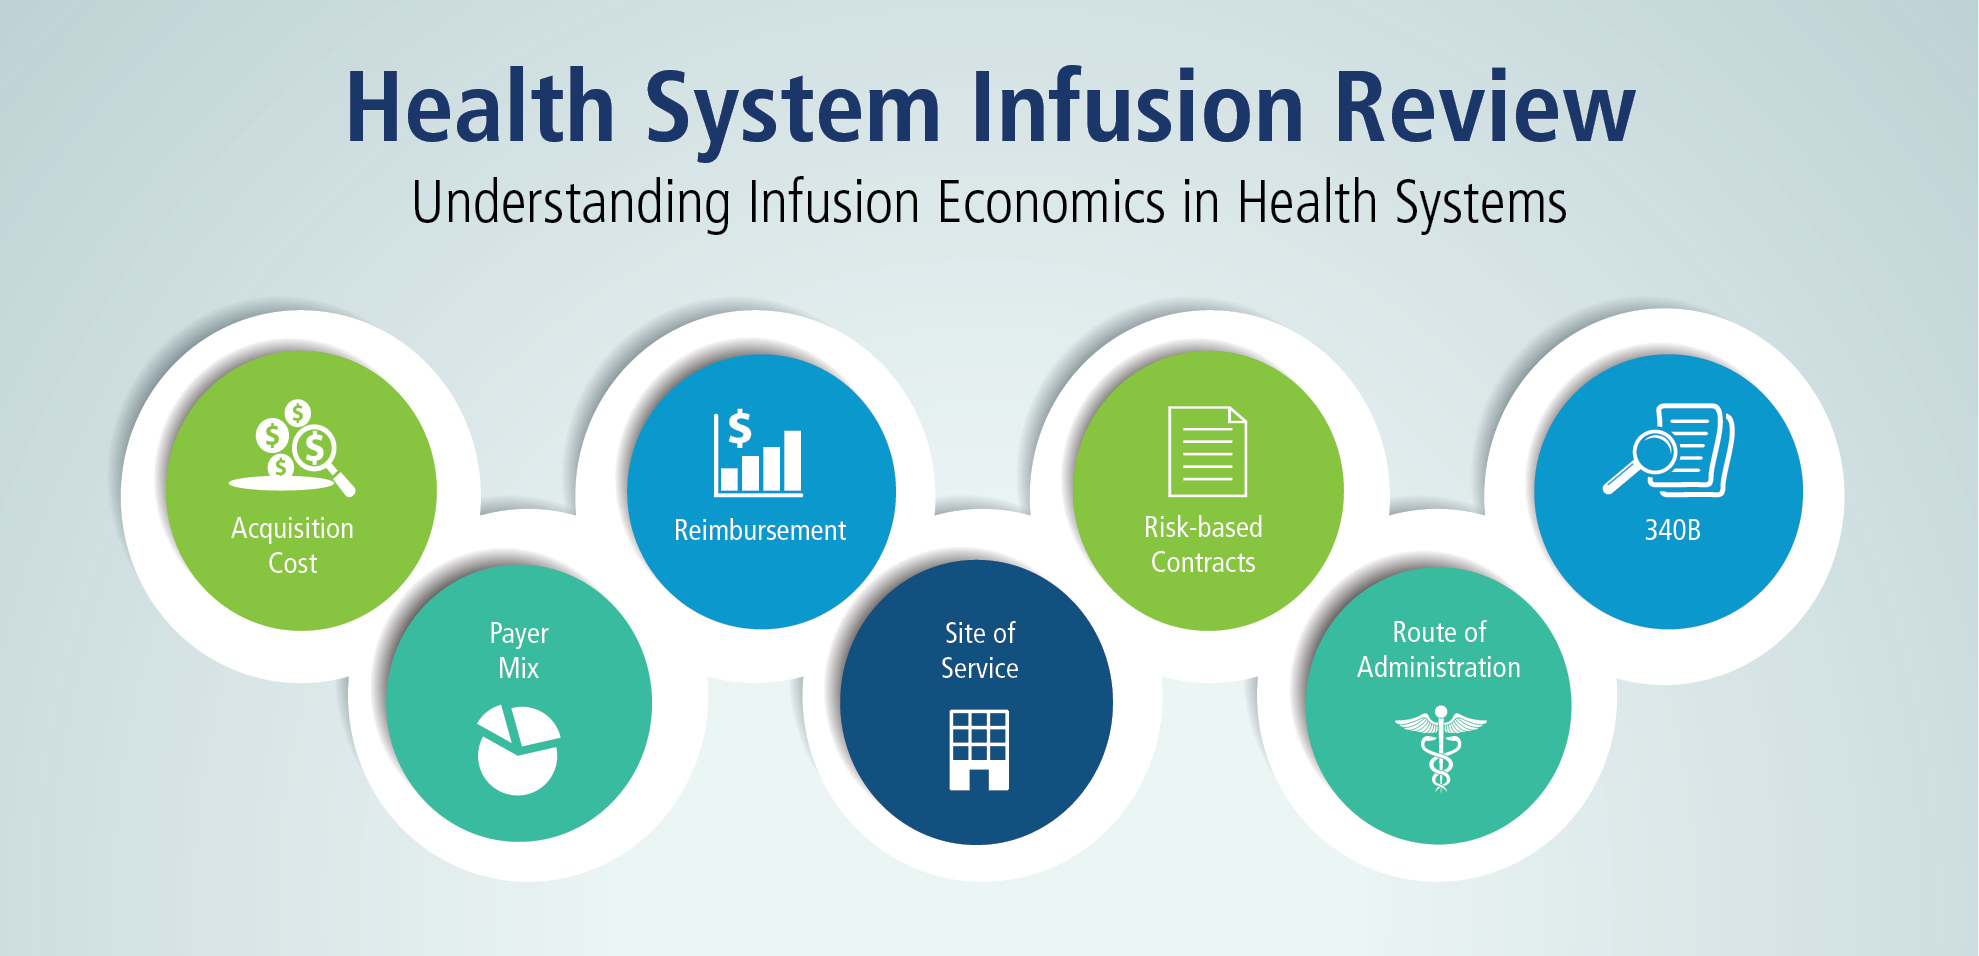 Health System Infusion Review